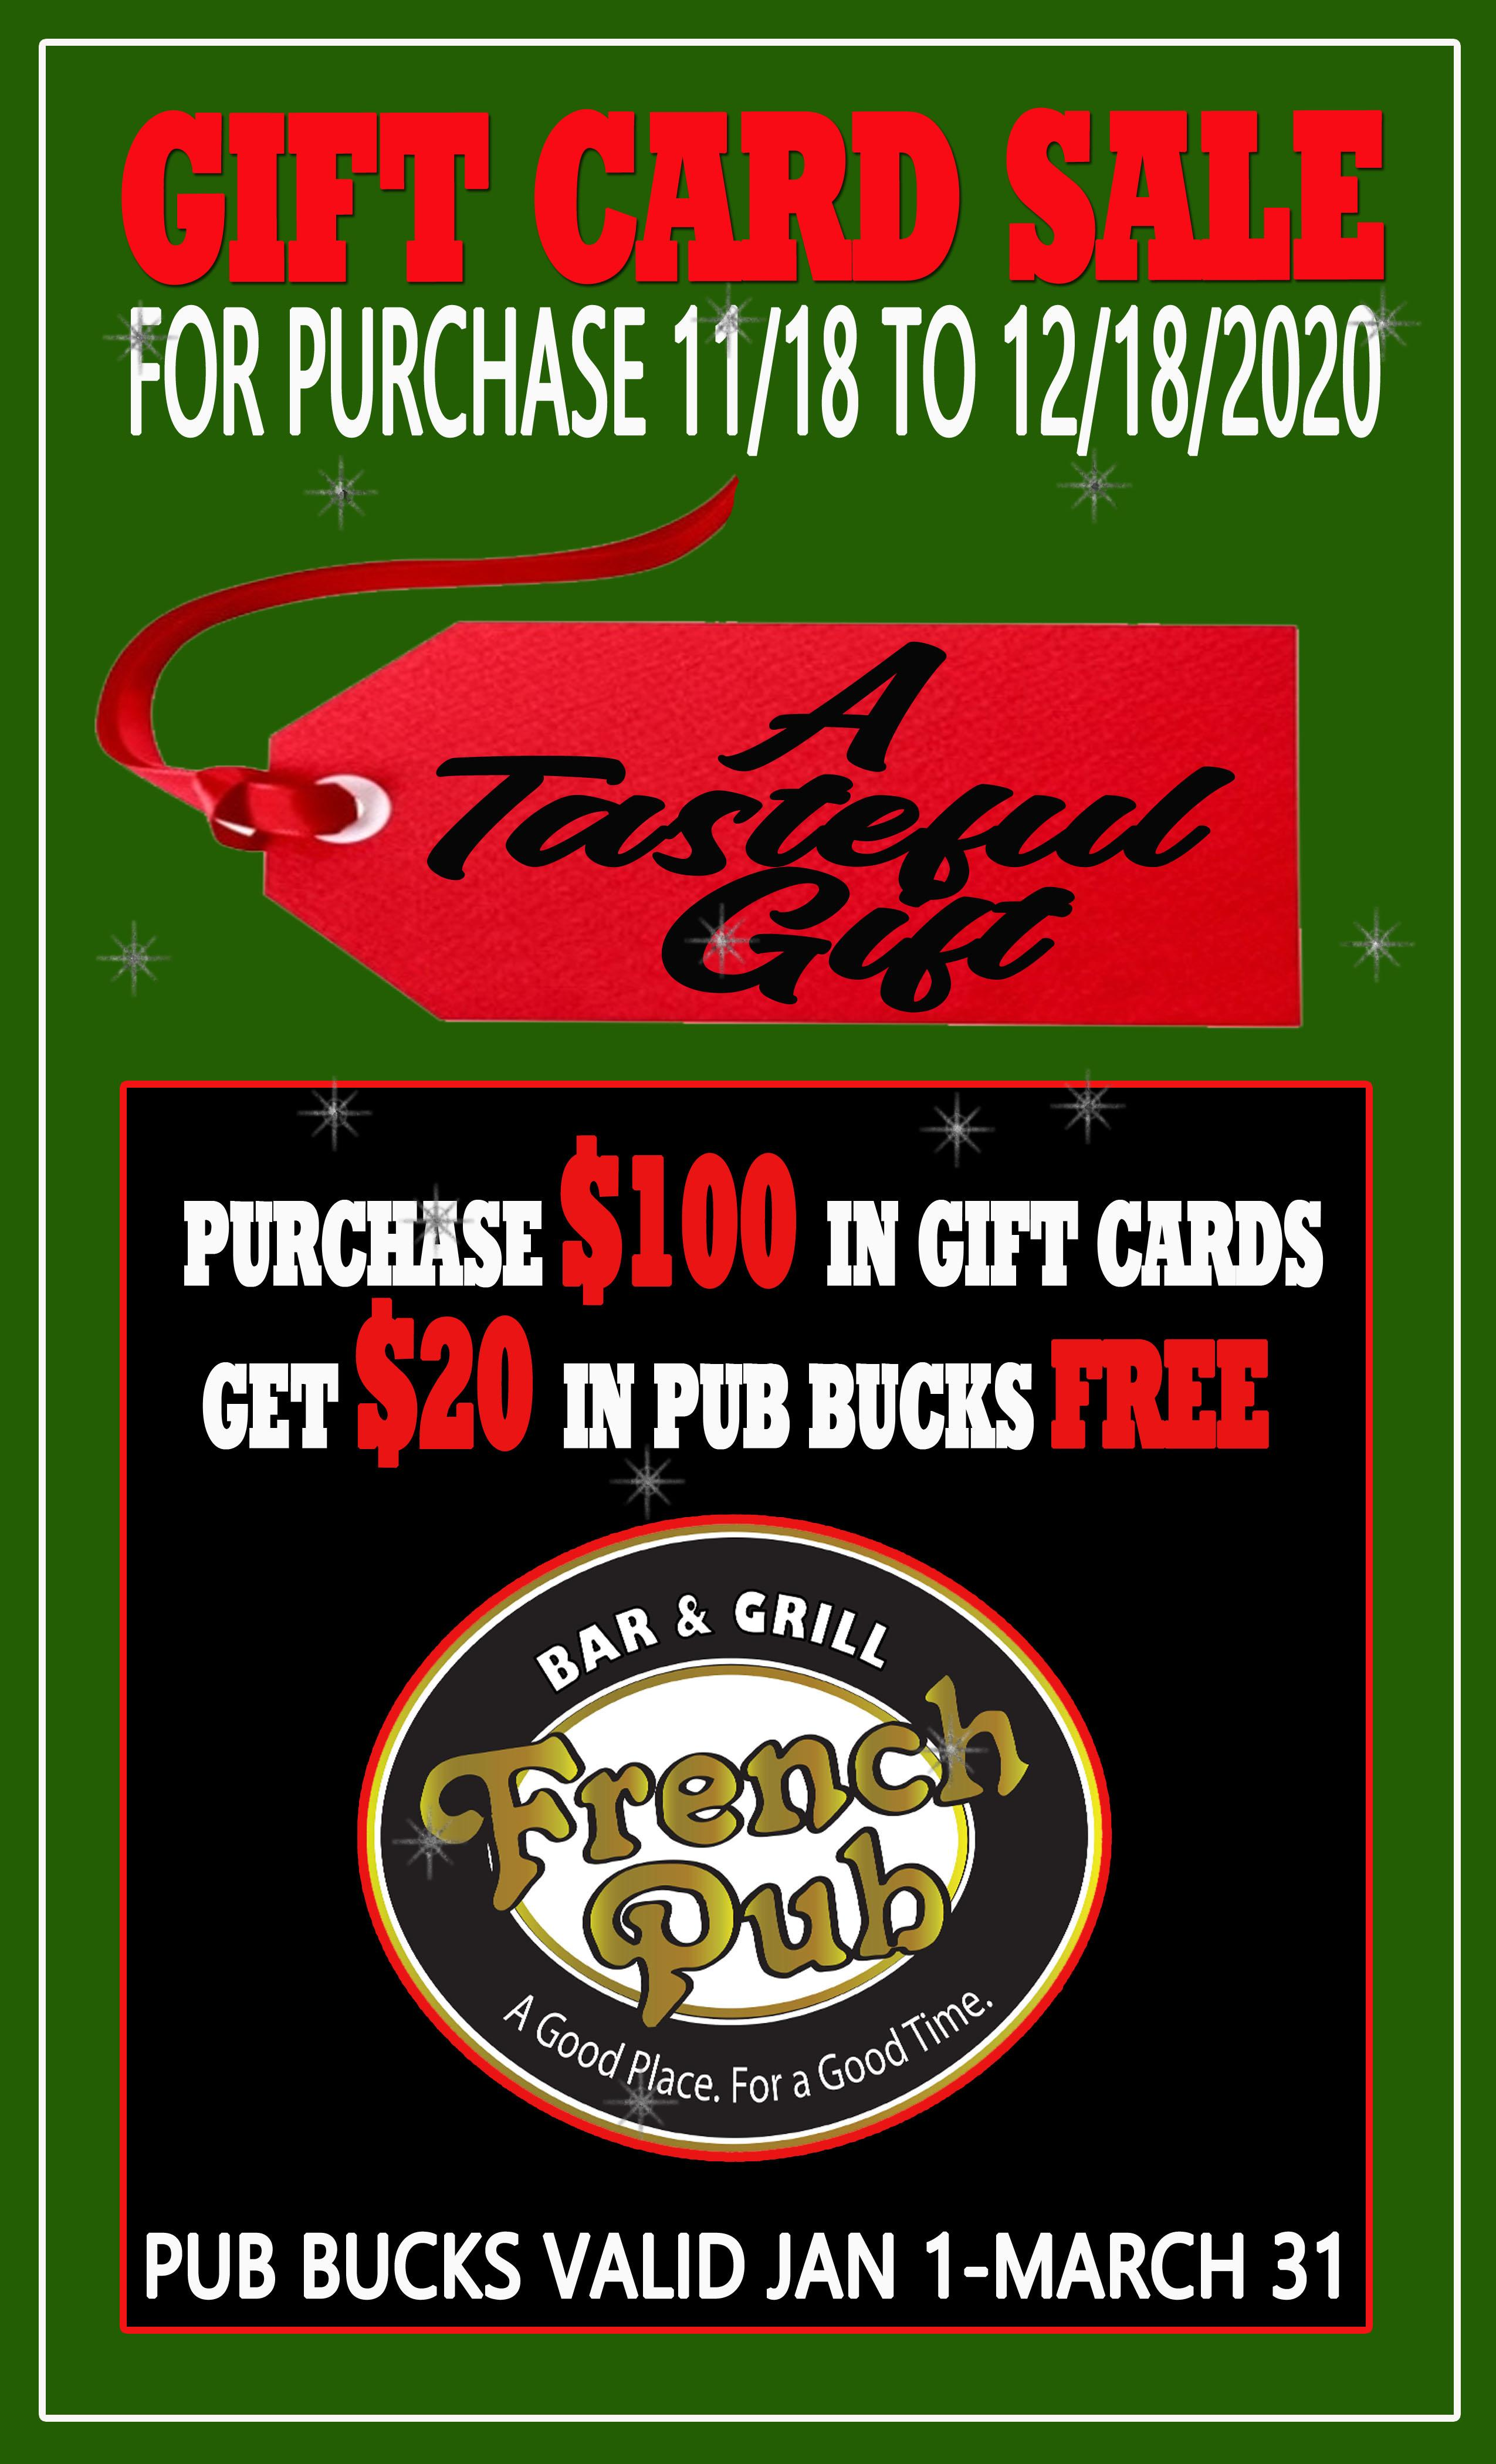 gift card sale for purchase 11/18 to 12/18/2020. a tasteful gift. purchase $100 in gift cards get $20 in pub bucks free. pub bucks valid jan 1- march 31.